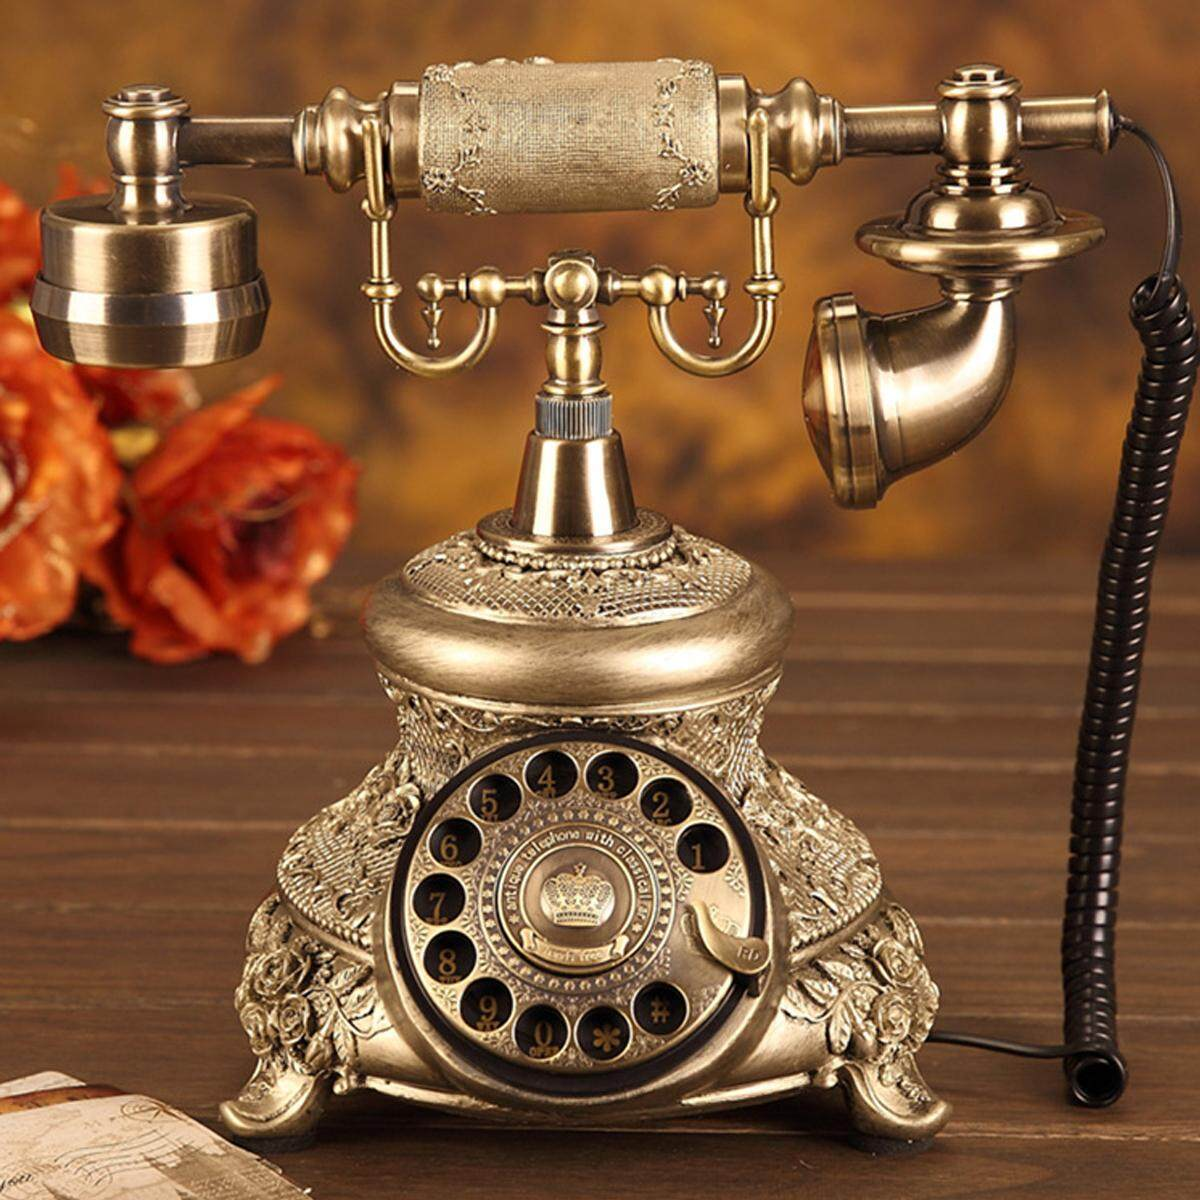 Telephone For Sale Landline Phone Prices Brands Specs In Wiring A Touch Tone Pad To Any Antique Conversion Retro Style Old Fashioned Handset Rotate Dial Home Intl